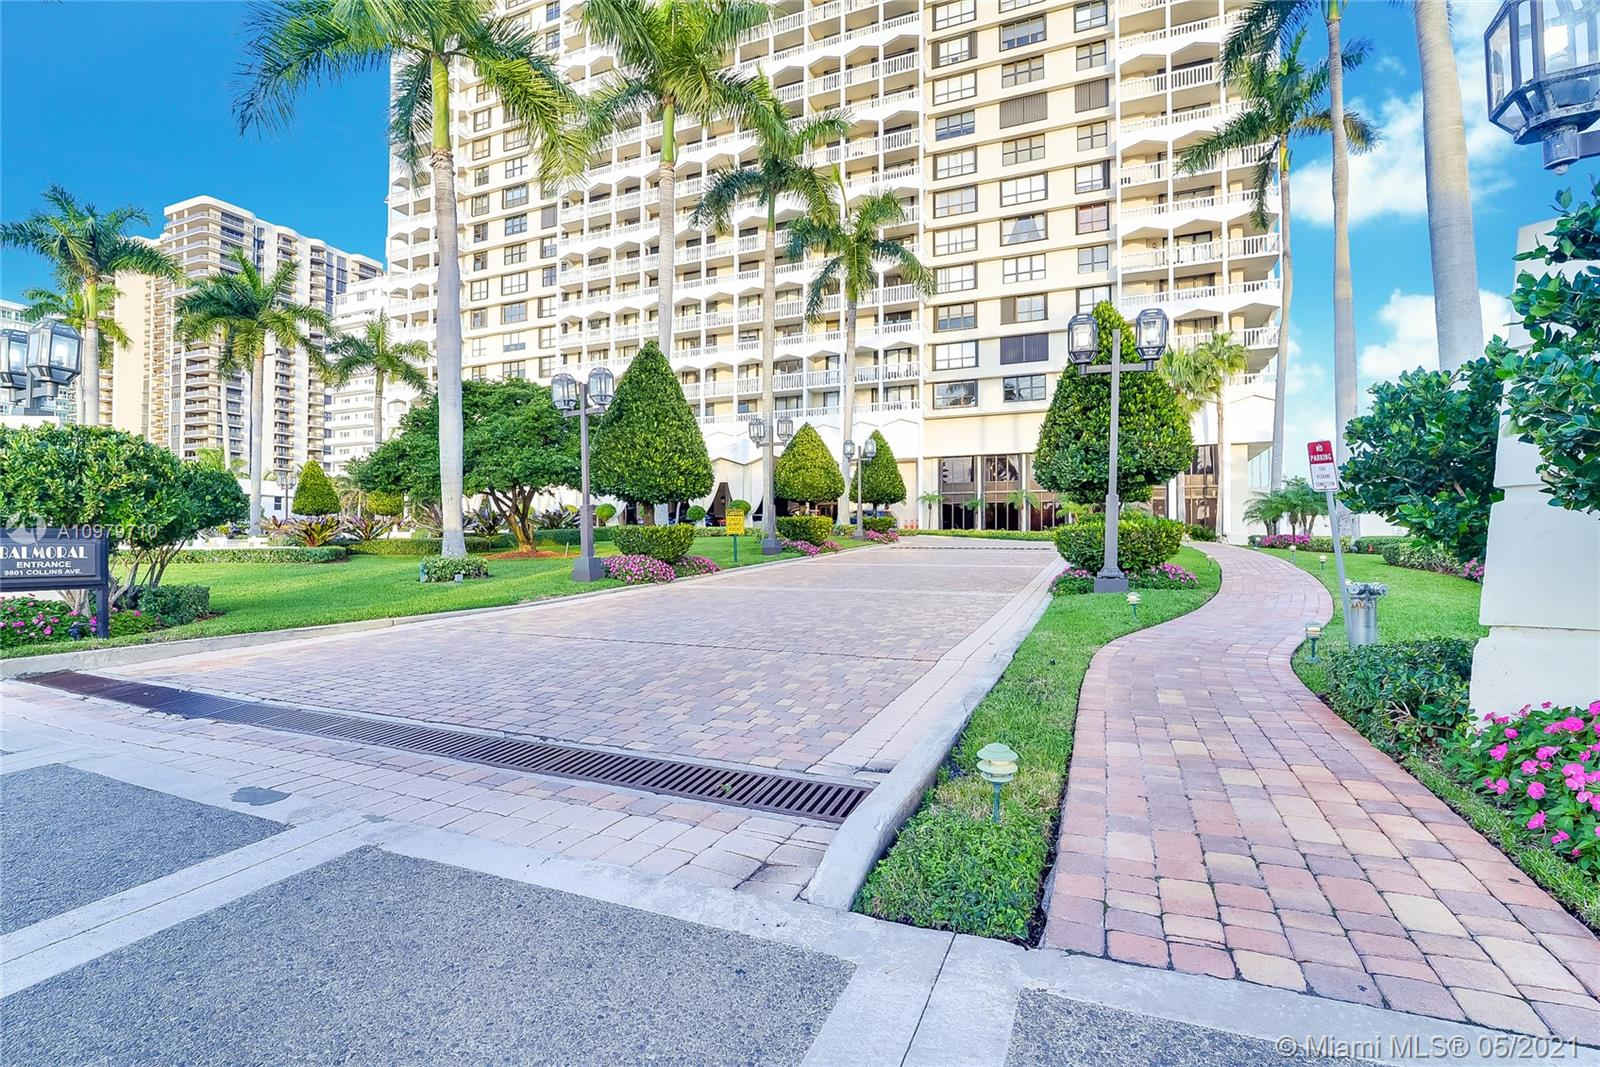 Photo of 9801 Collins Ave #10R, Bal Harbour, Florida, 33154 - Balmoral Front